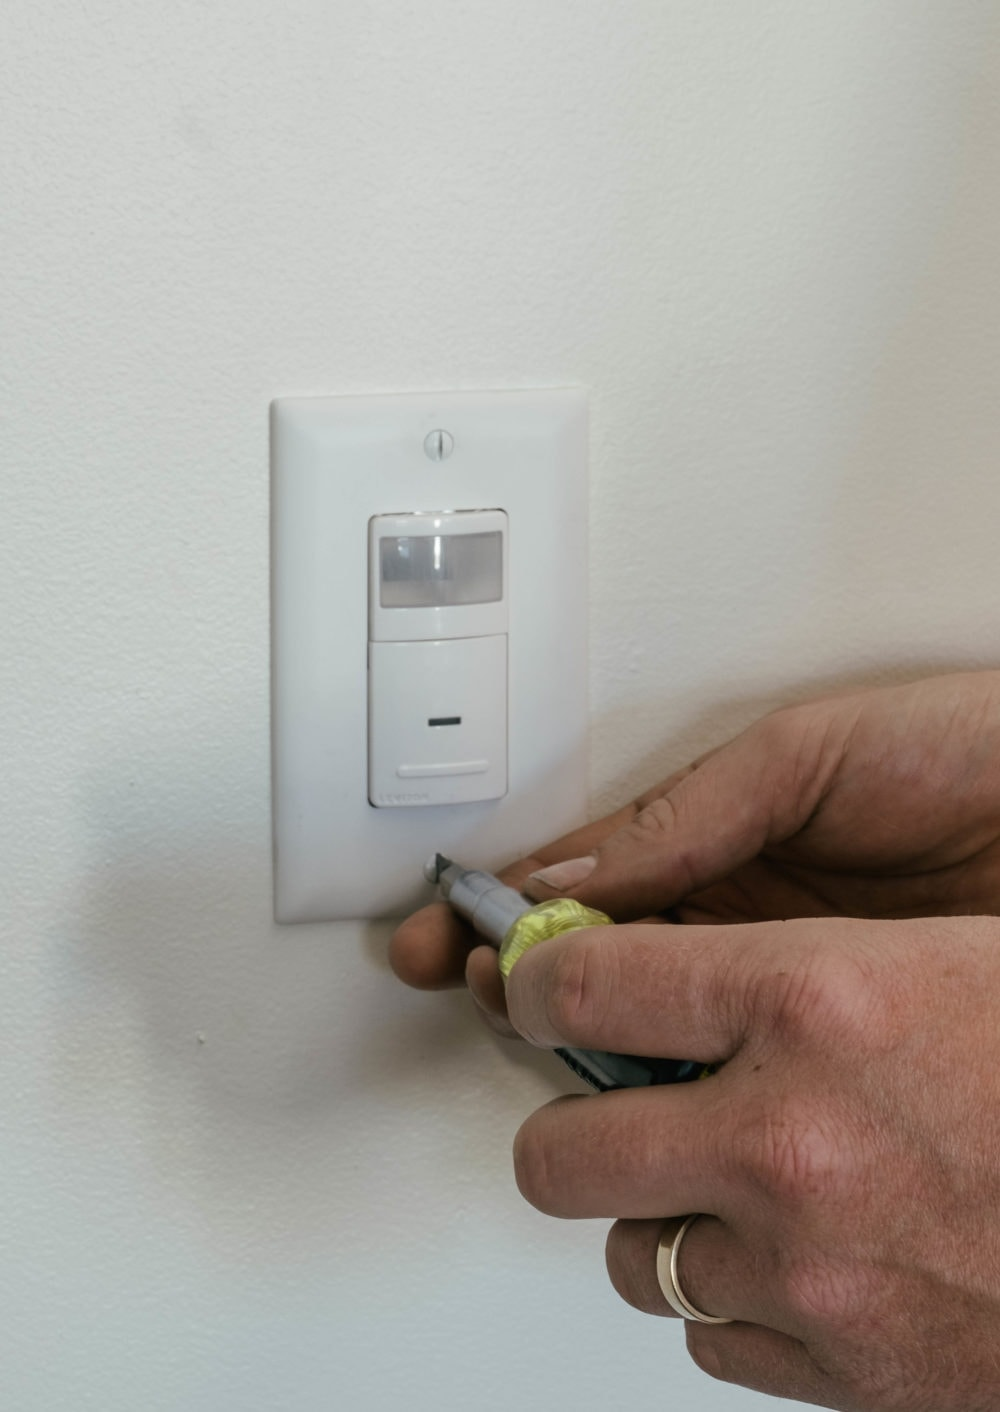 Installing an smart occupancy sensor for use in a Smart Lighting system